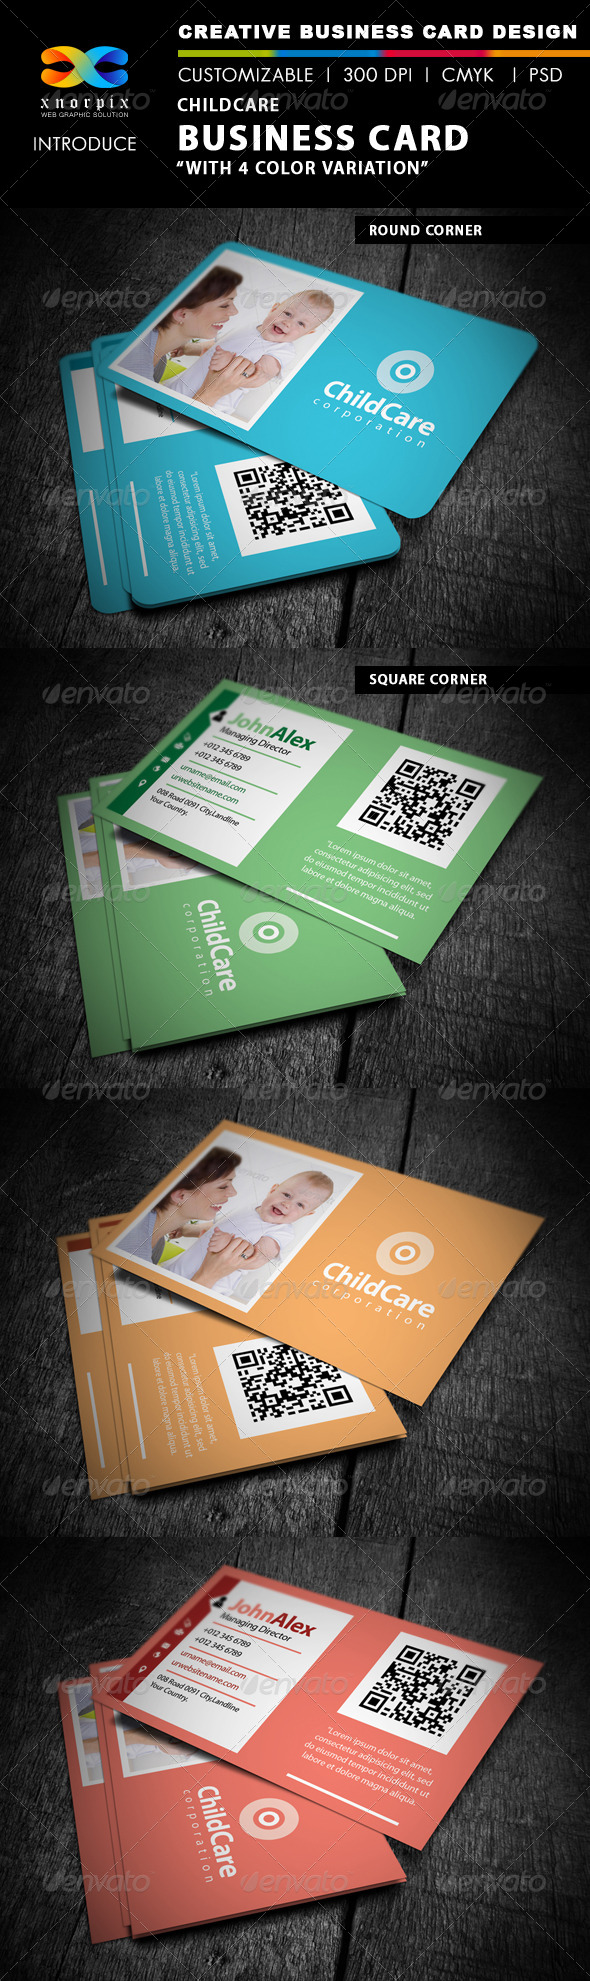 Childcare Business Card - Industry Specific Business Cards